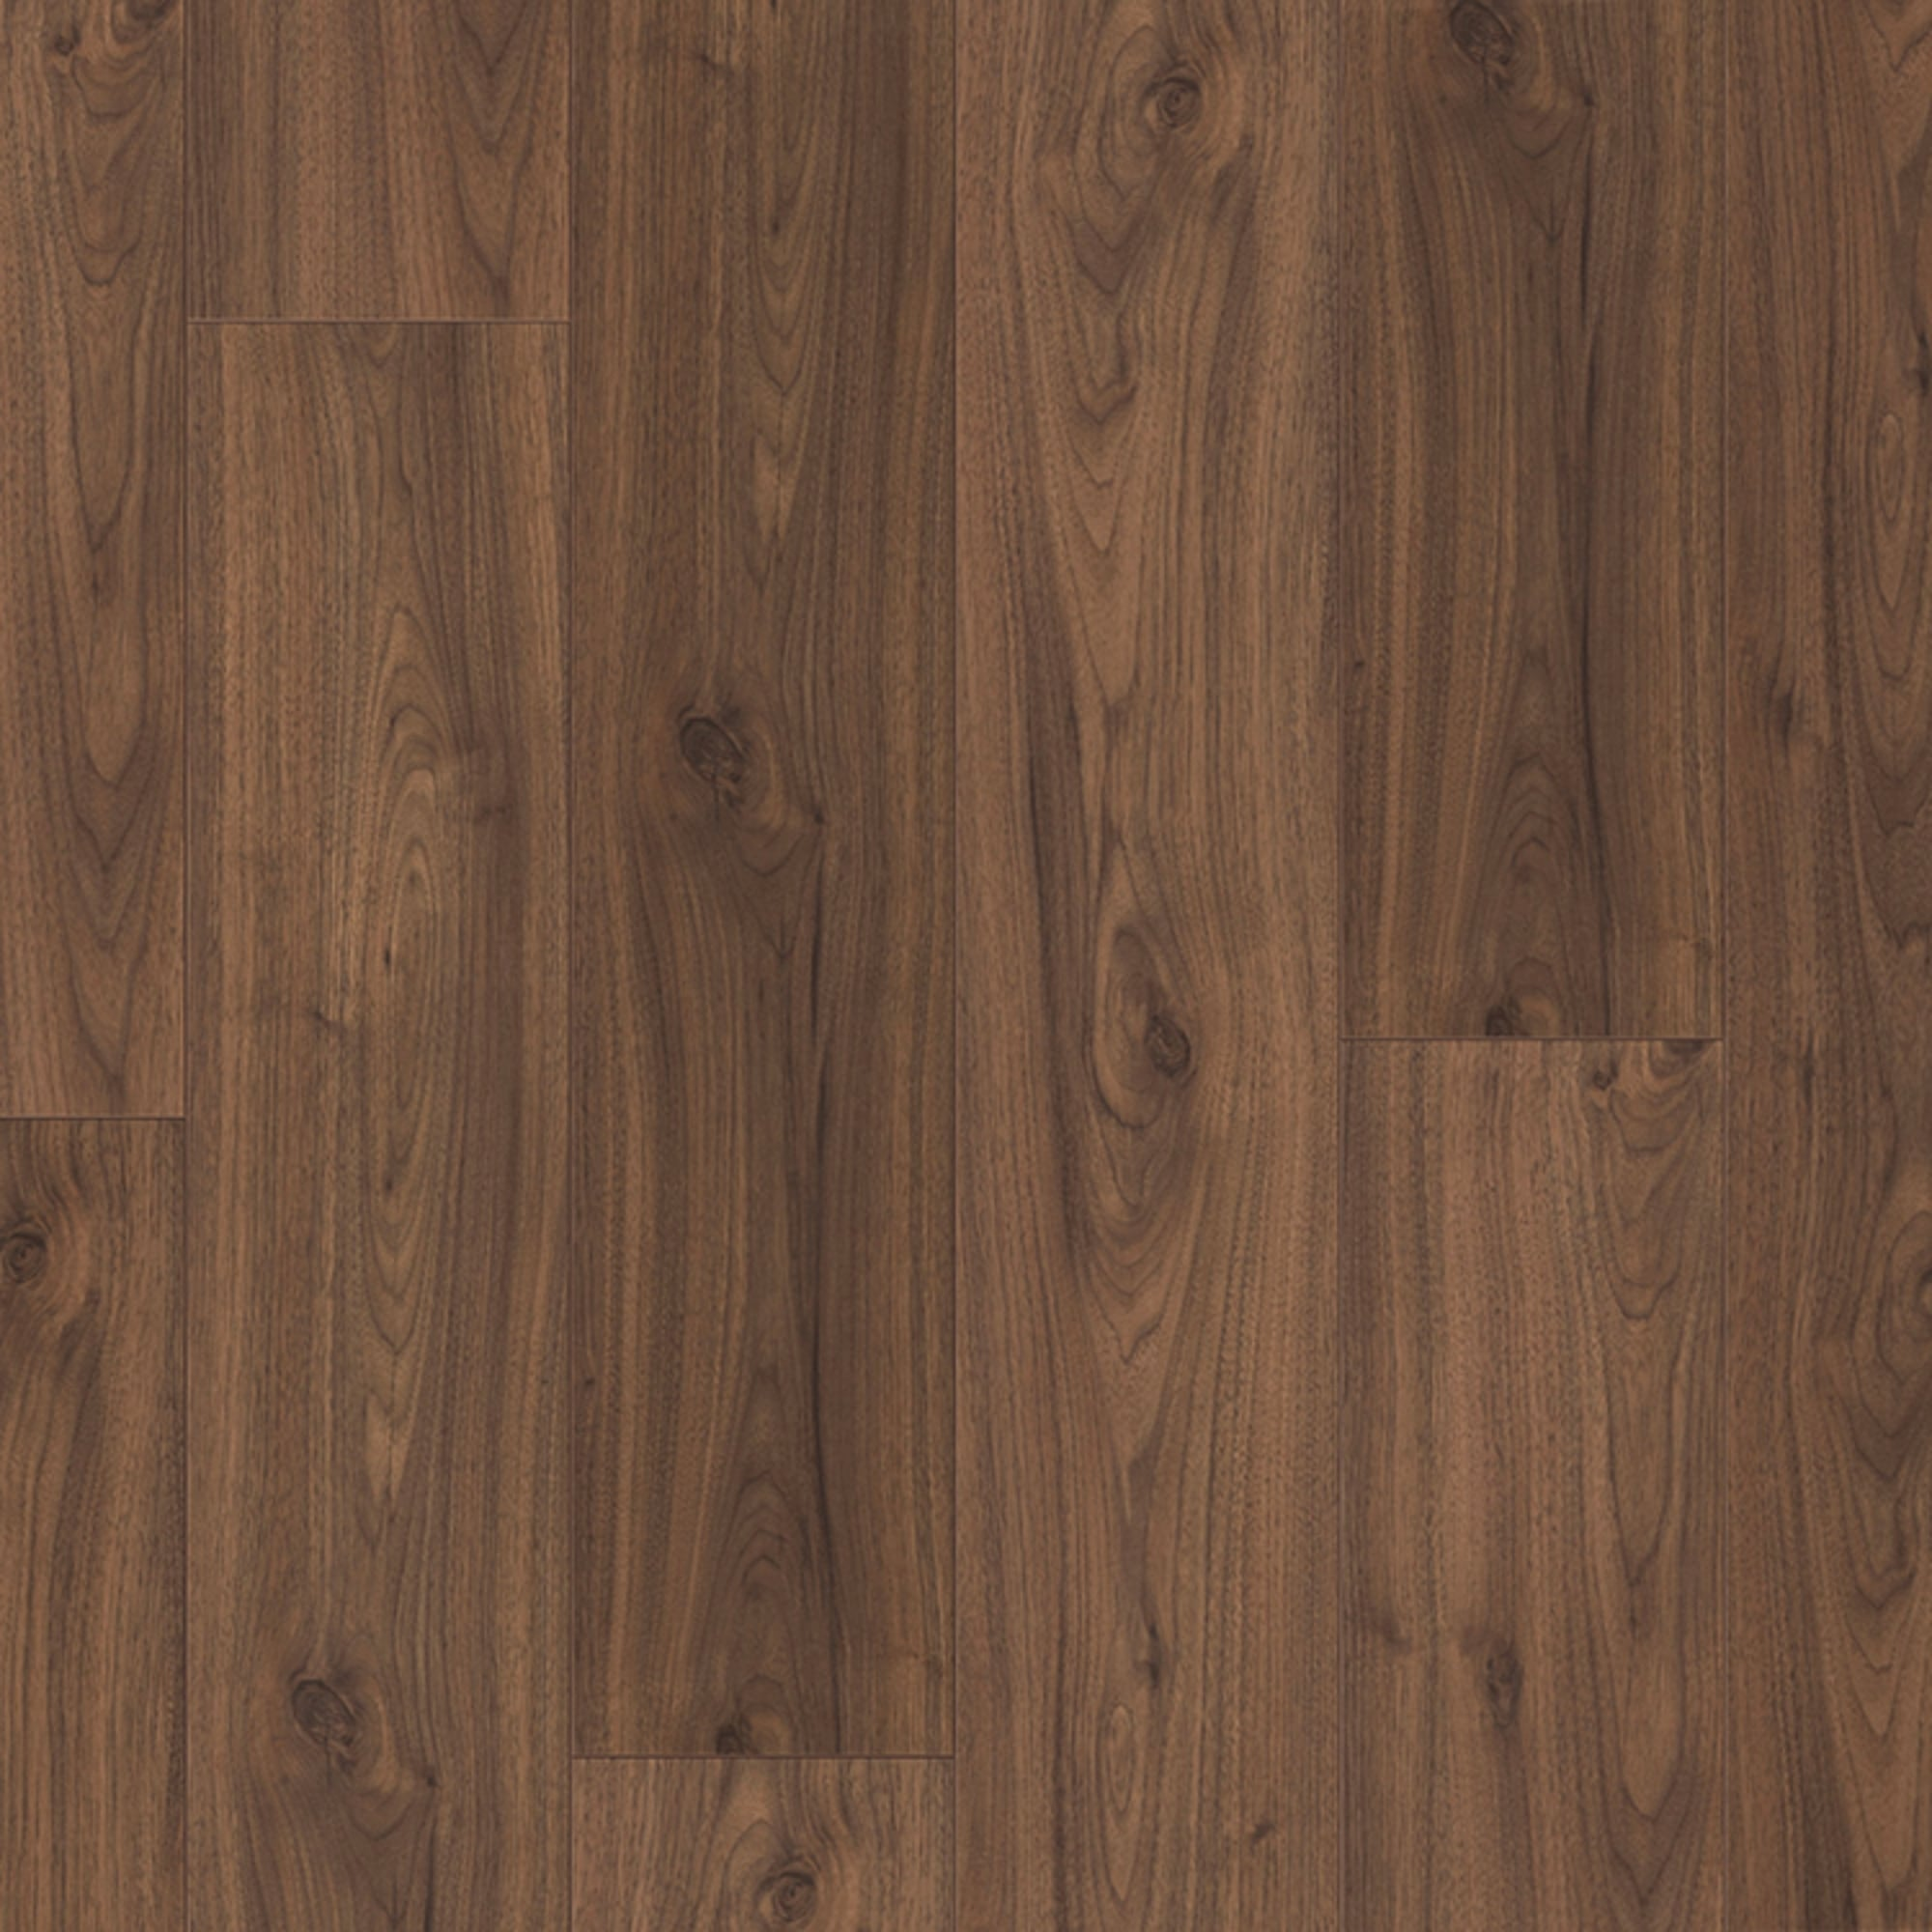 Wood Flooring Ld95 Classic Amore Walnut Laminate Flooring